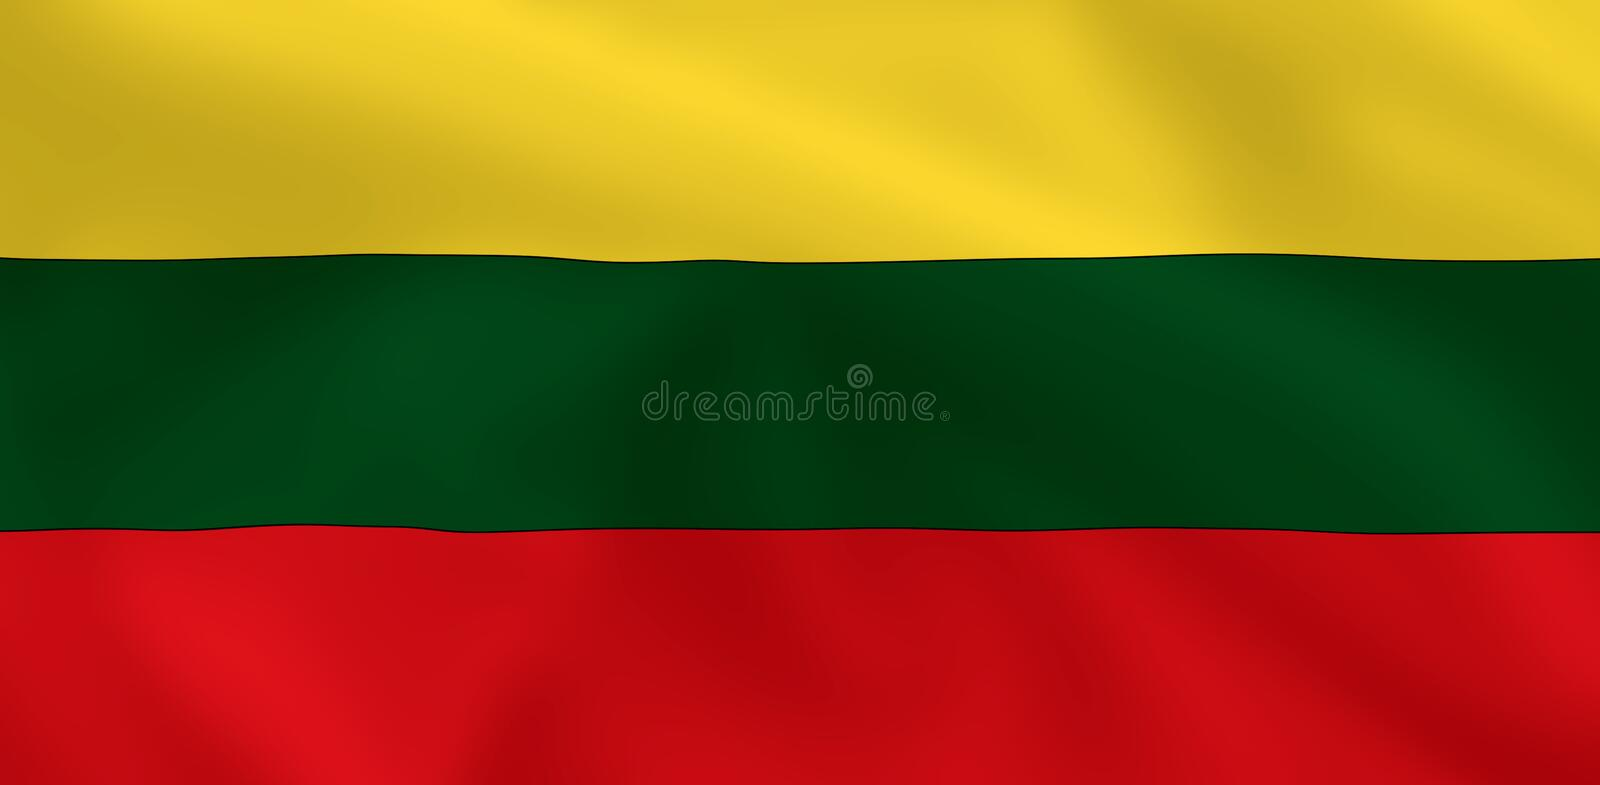 Flag of Lithuania royalty free illustration